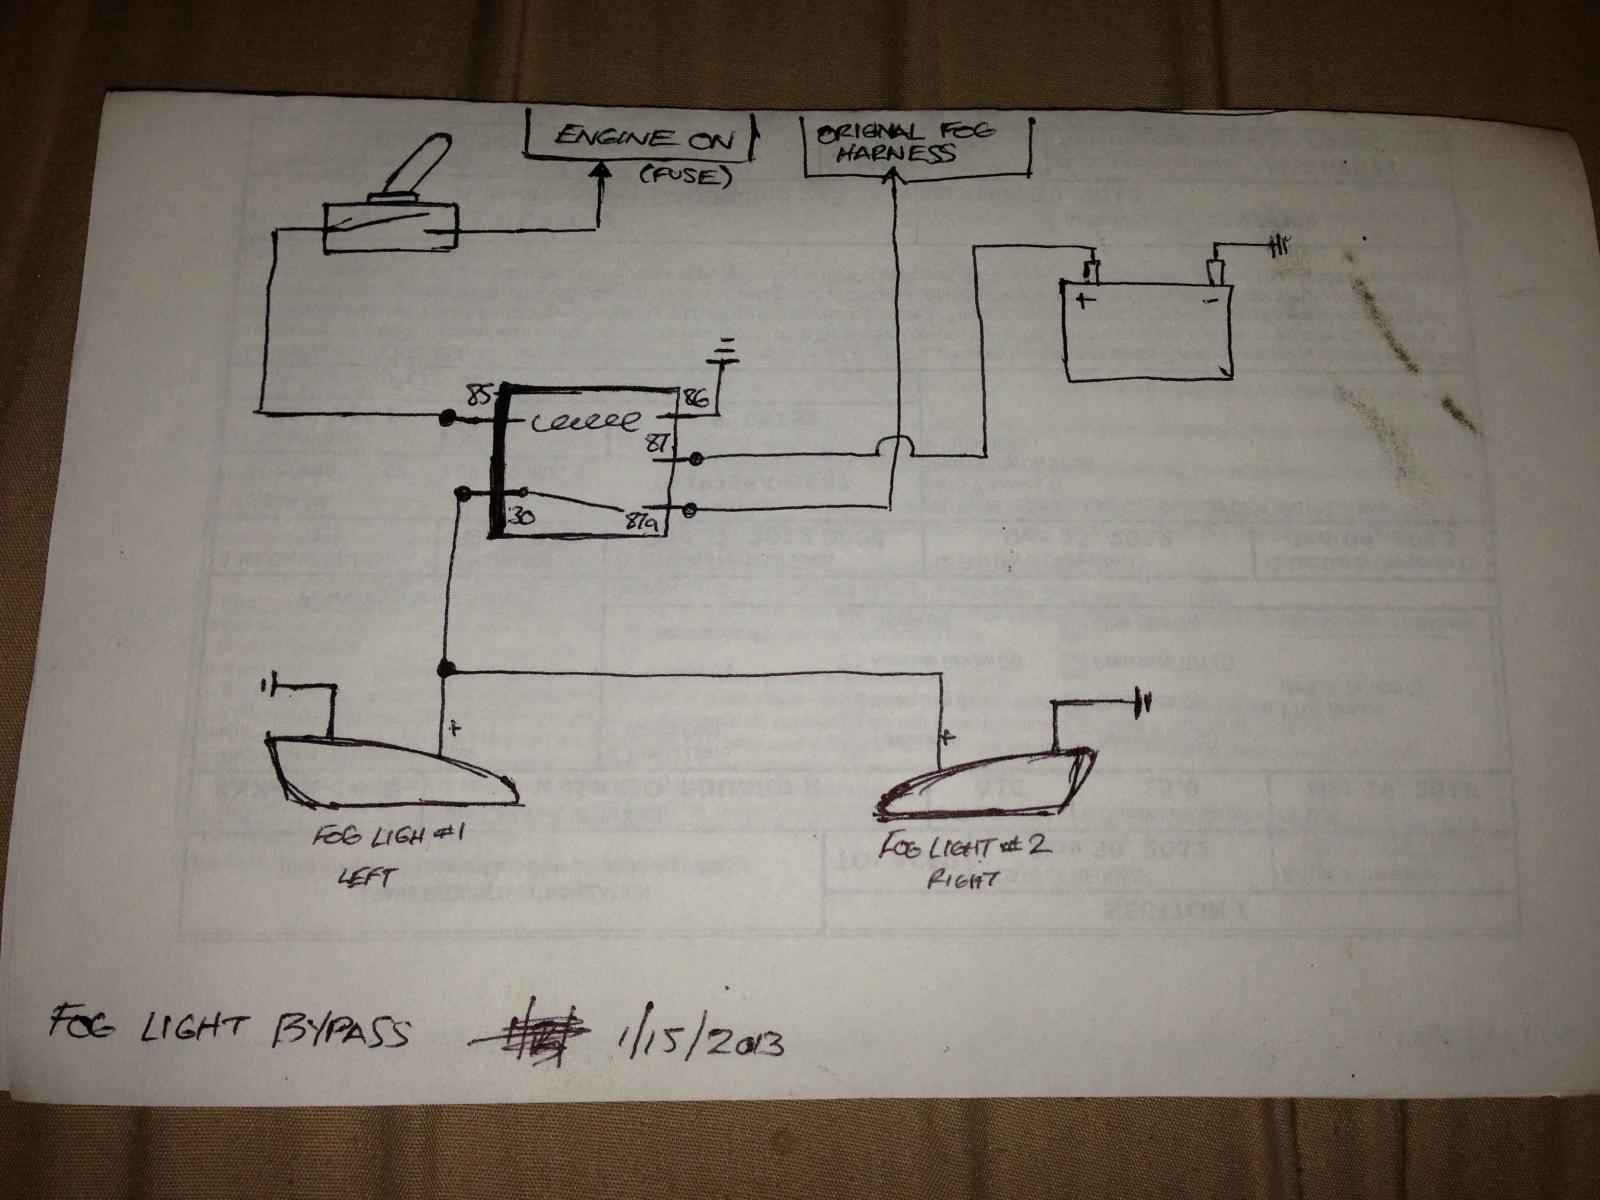 Simple wiring diagram to bypass foglights works wo headlights or simple wiring diagram to bypass foglights works wo headlights or w highbeams swarovskicordoba Gallery